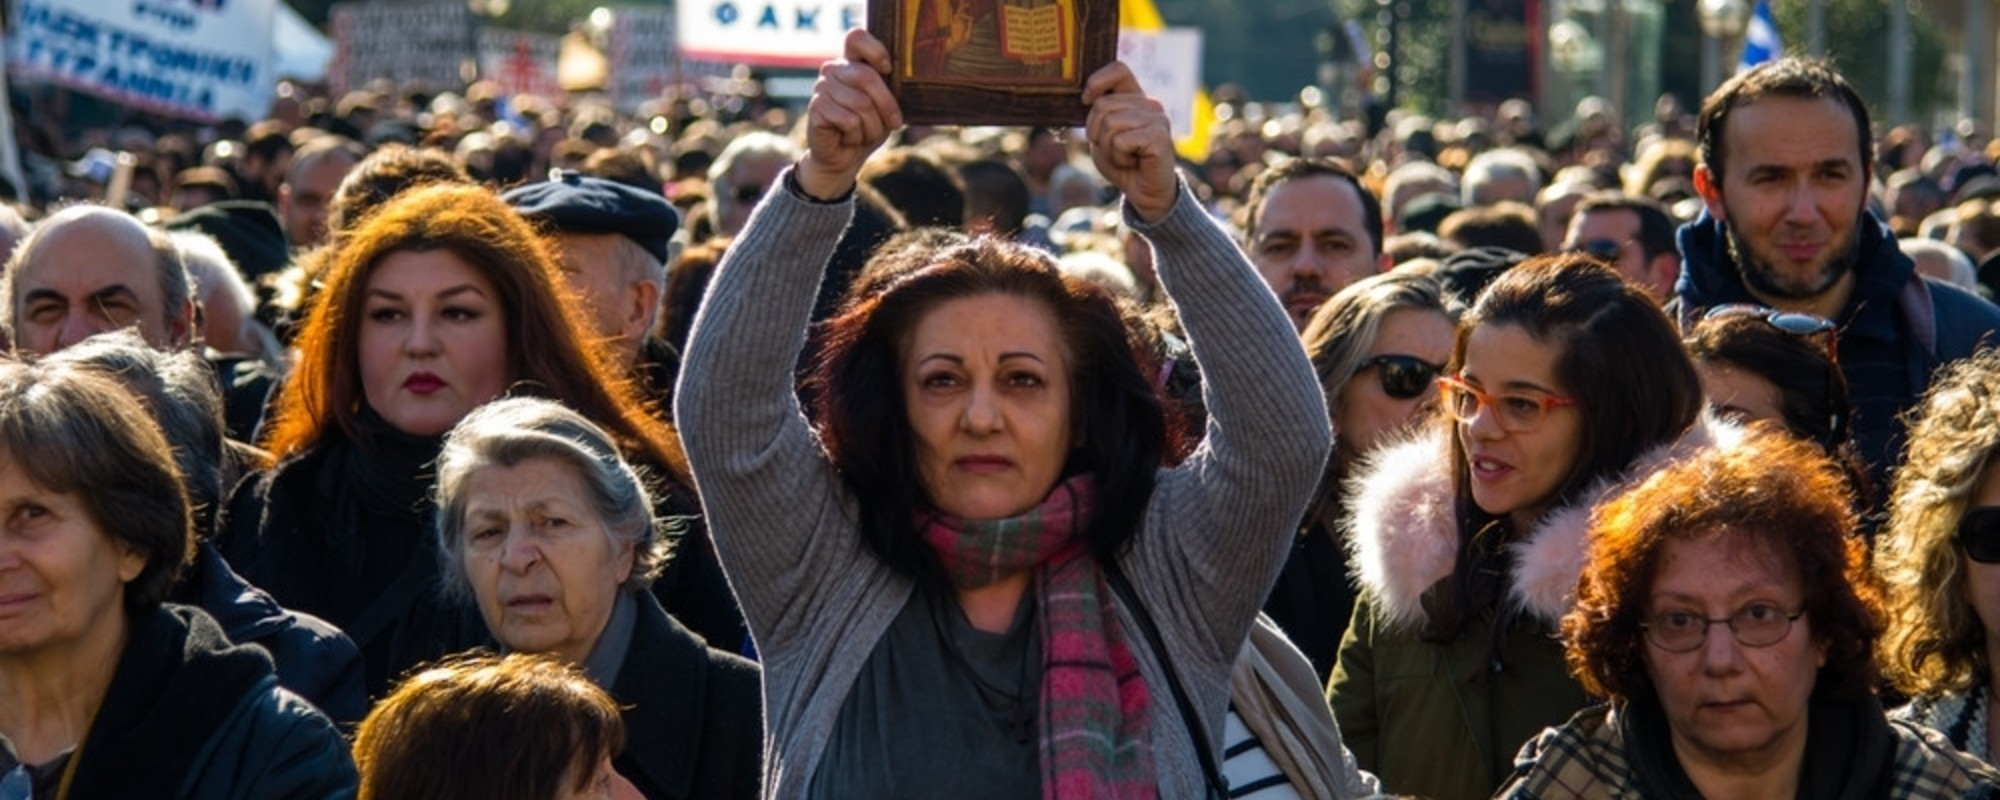 Photos of Greek Conspiracy Theorists Protesting Their New ID Cards